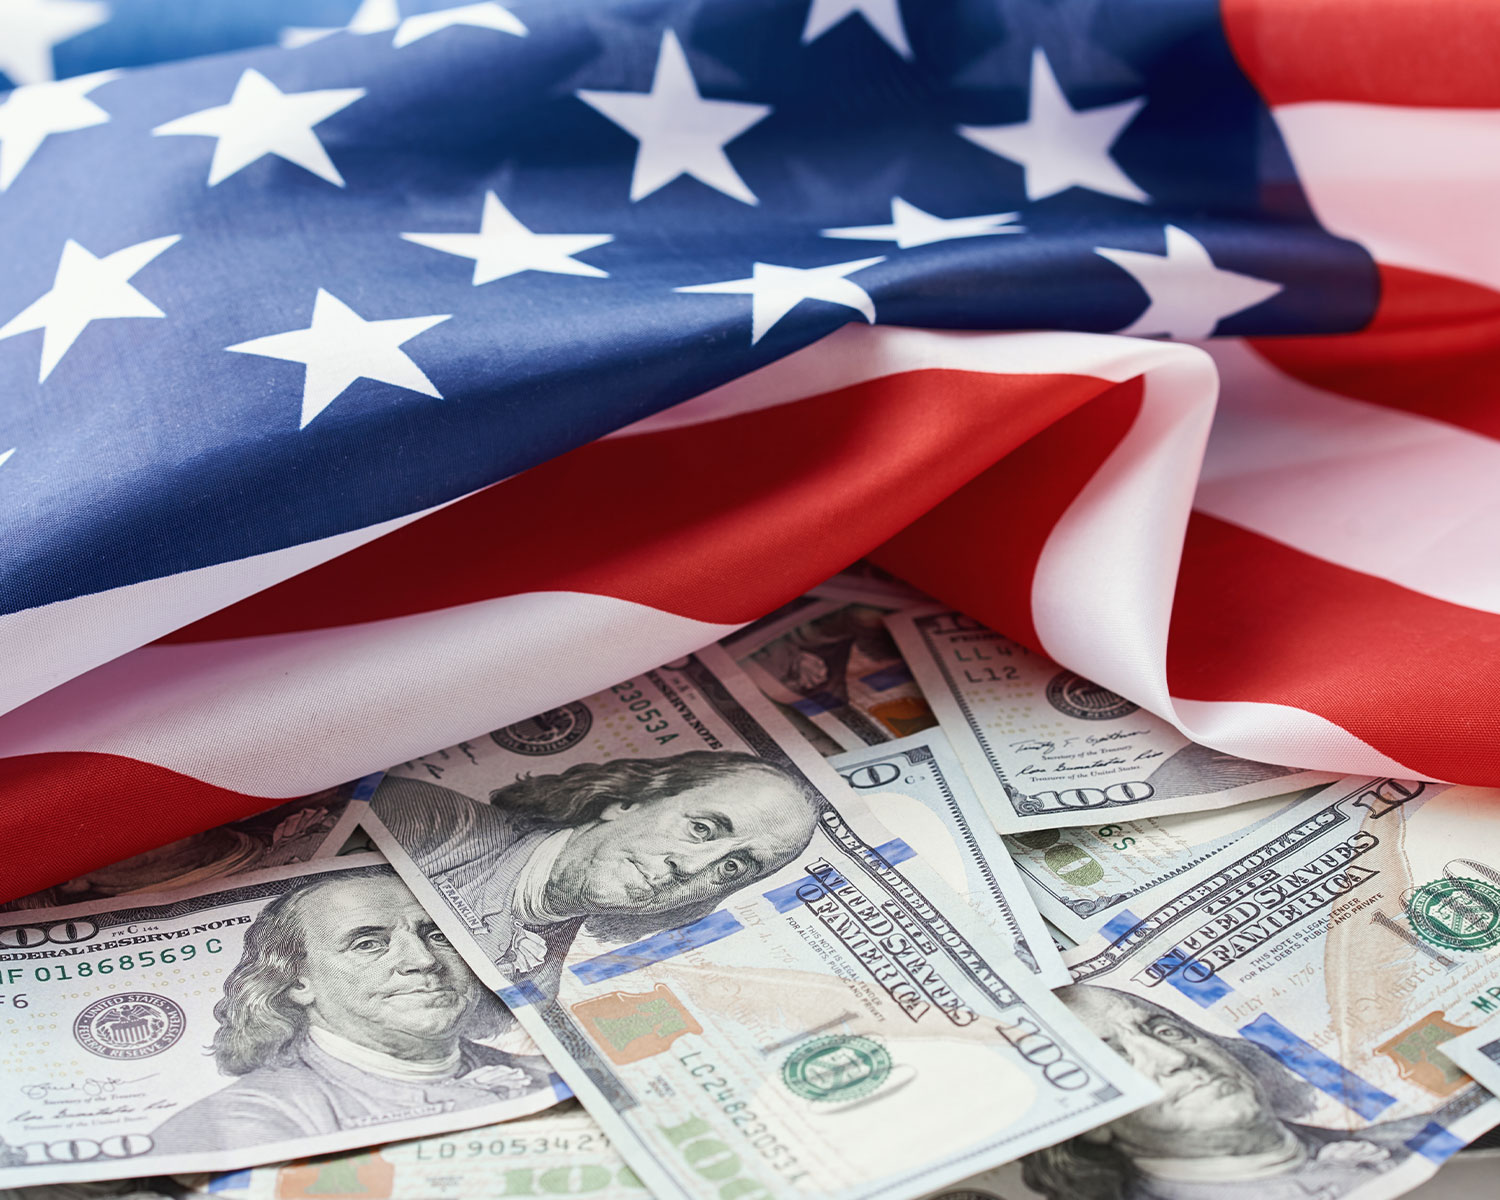 USA national flag and the dollar bills